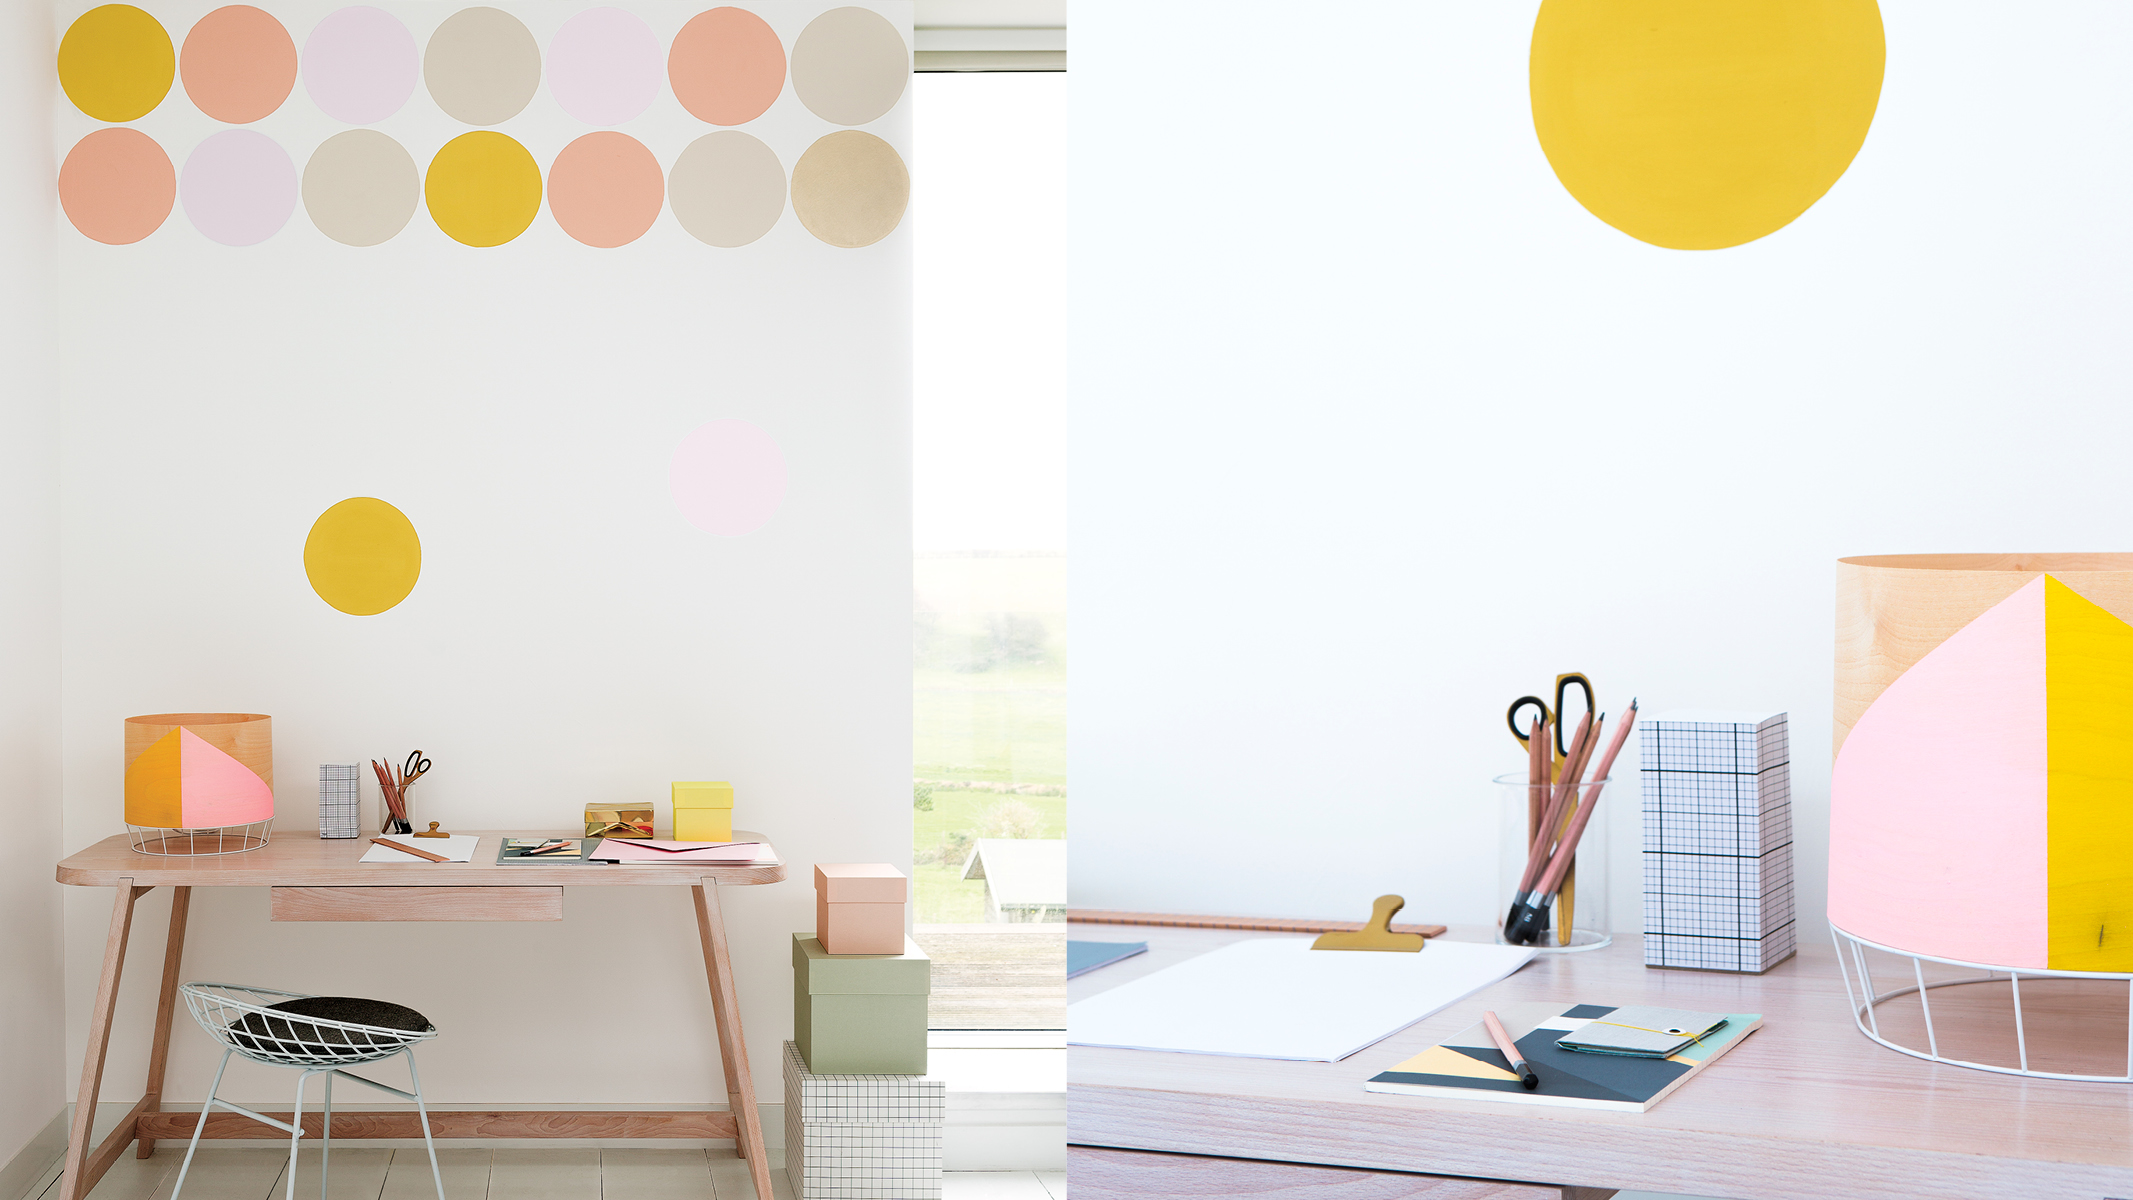 Circles are a captivating decorating idea, but too many will overpower the effect, so less is definitely more when it come to this appealing look.